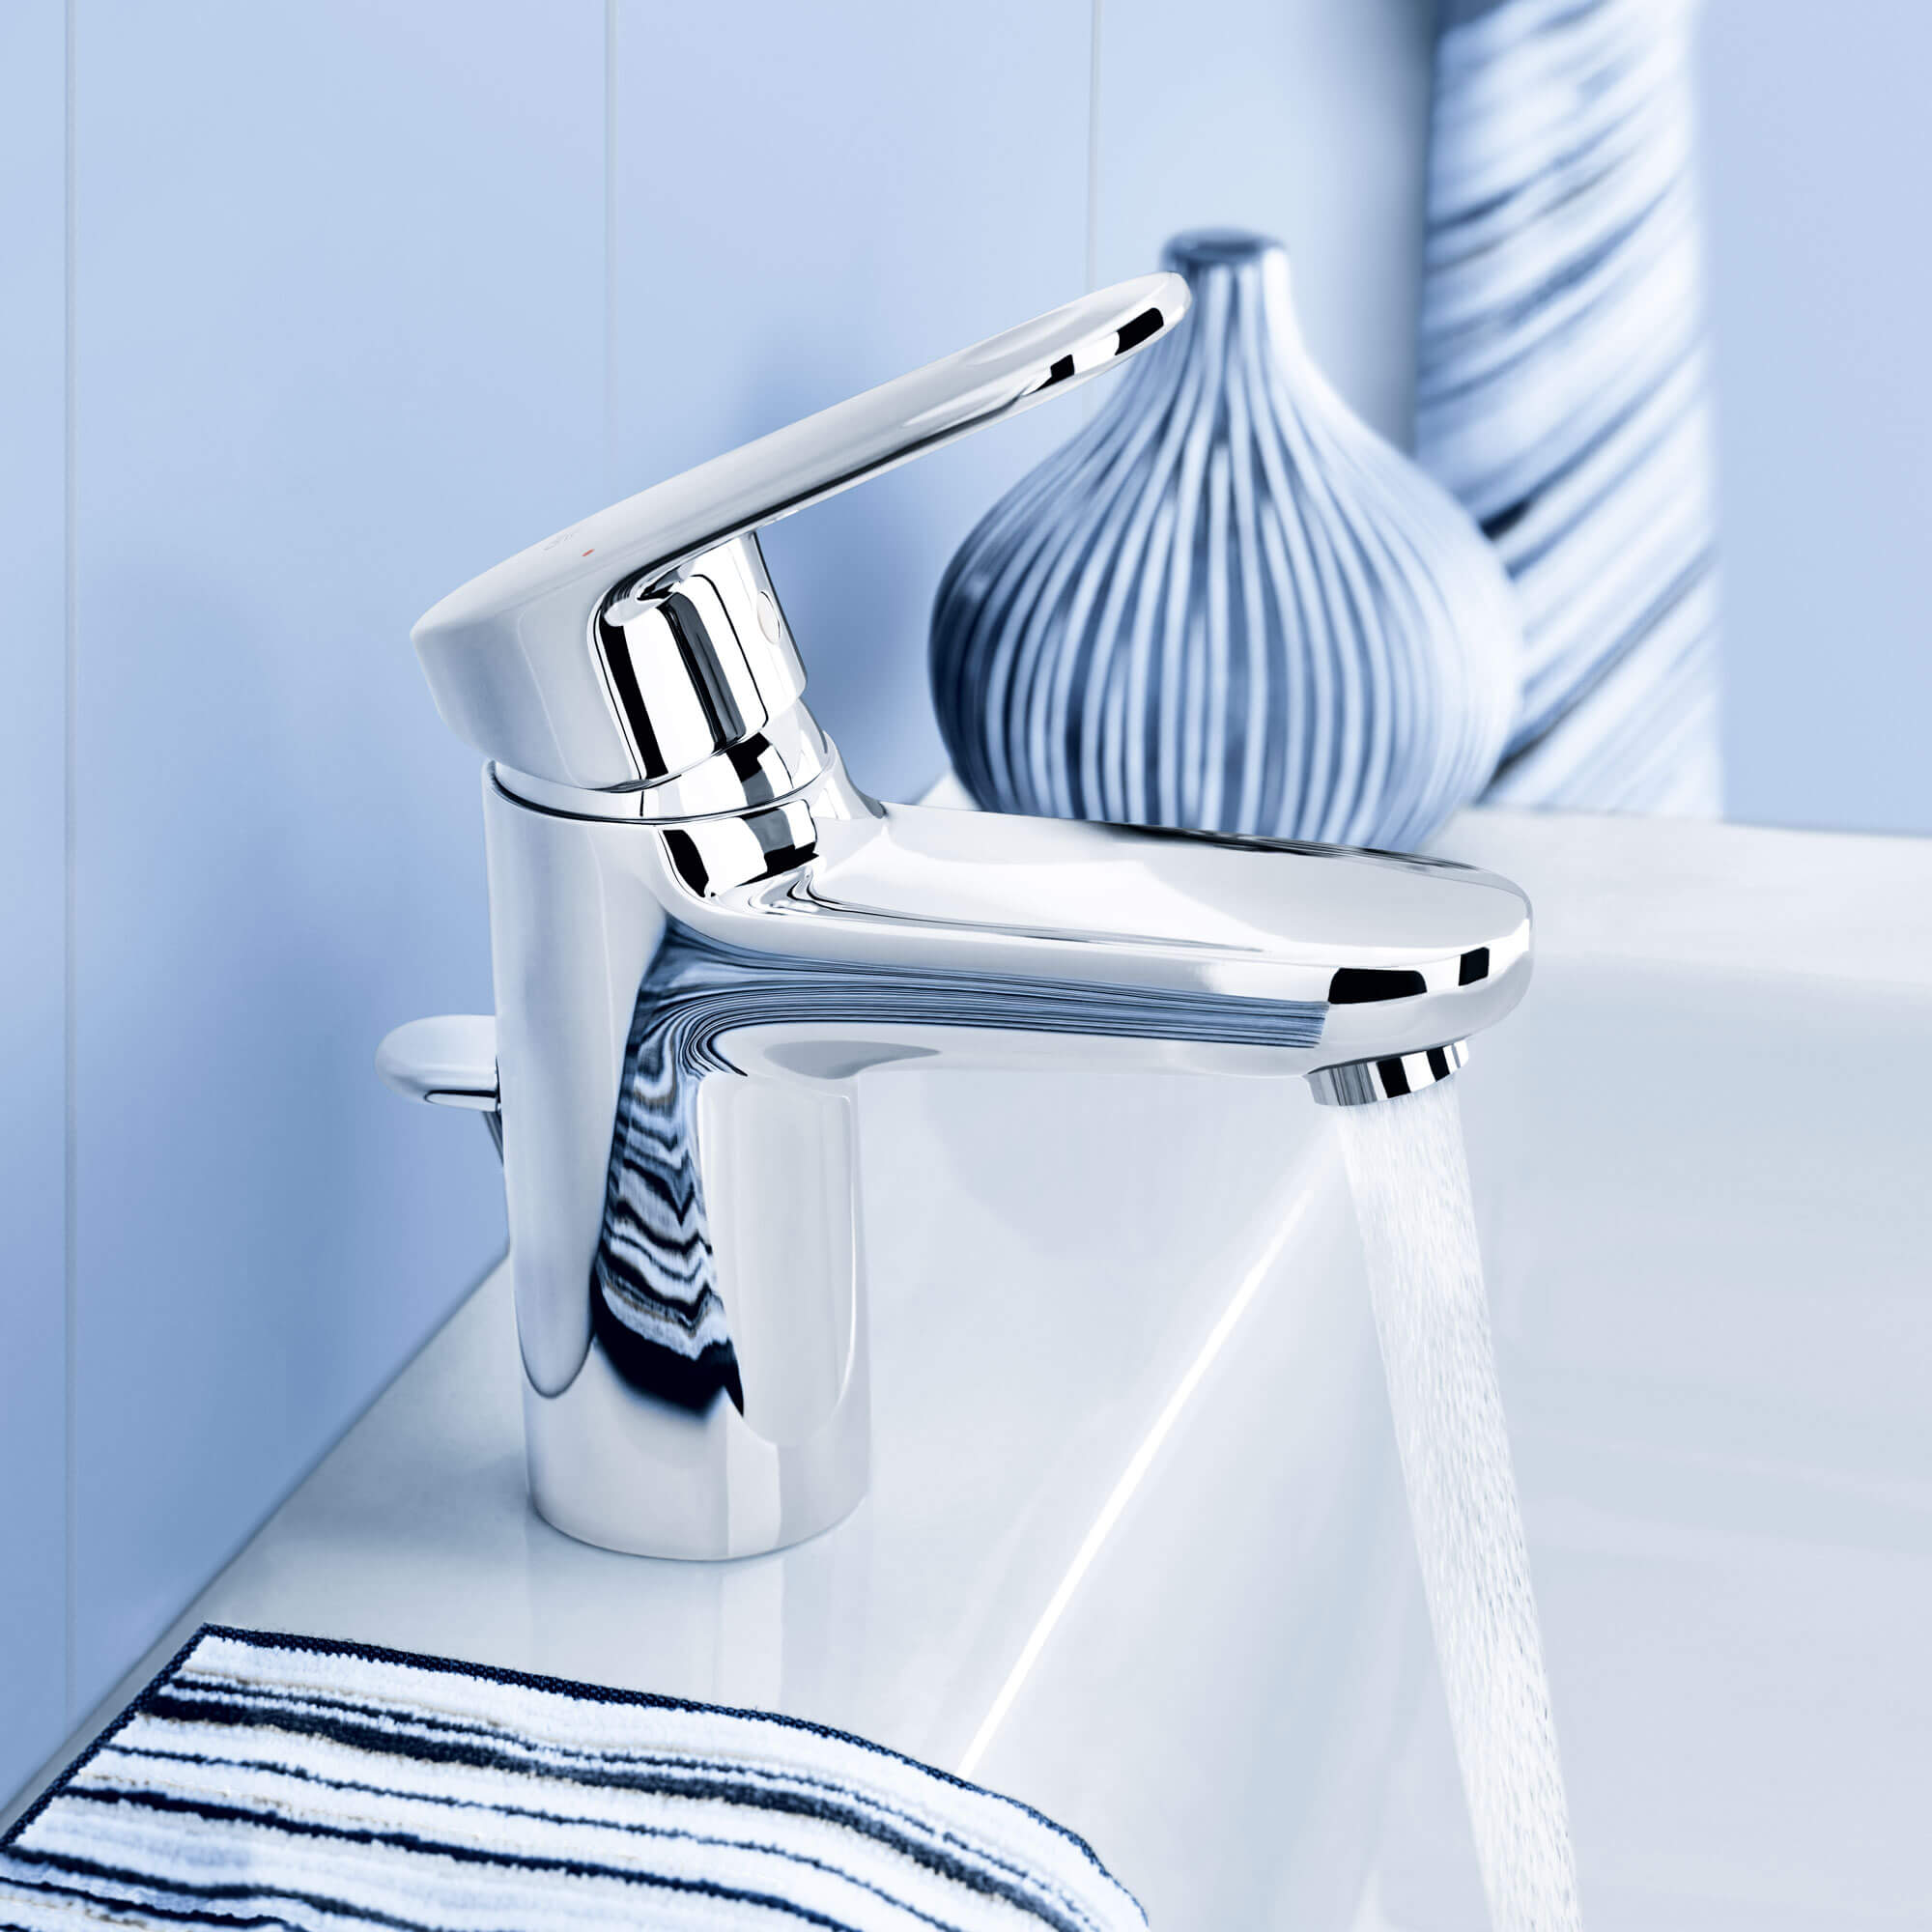 Europlus faucet in  bathroom with blue decorative designs.